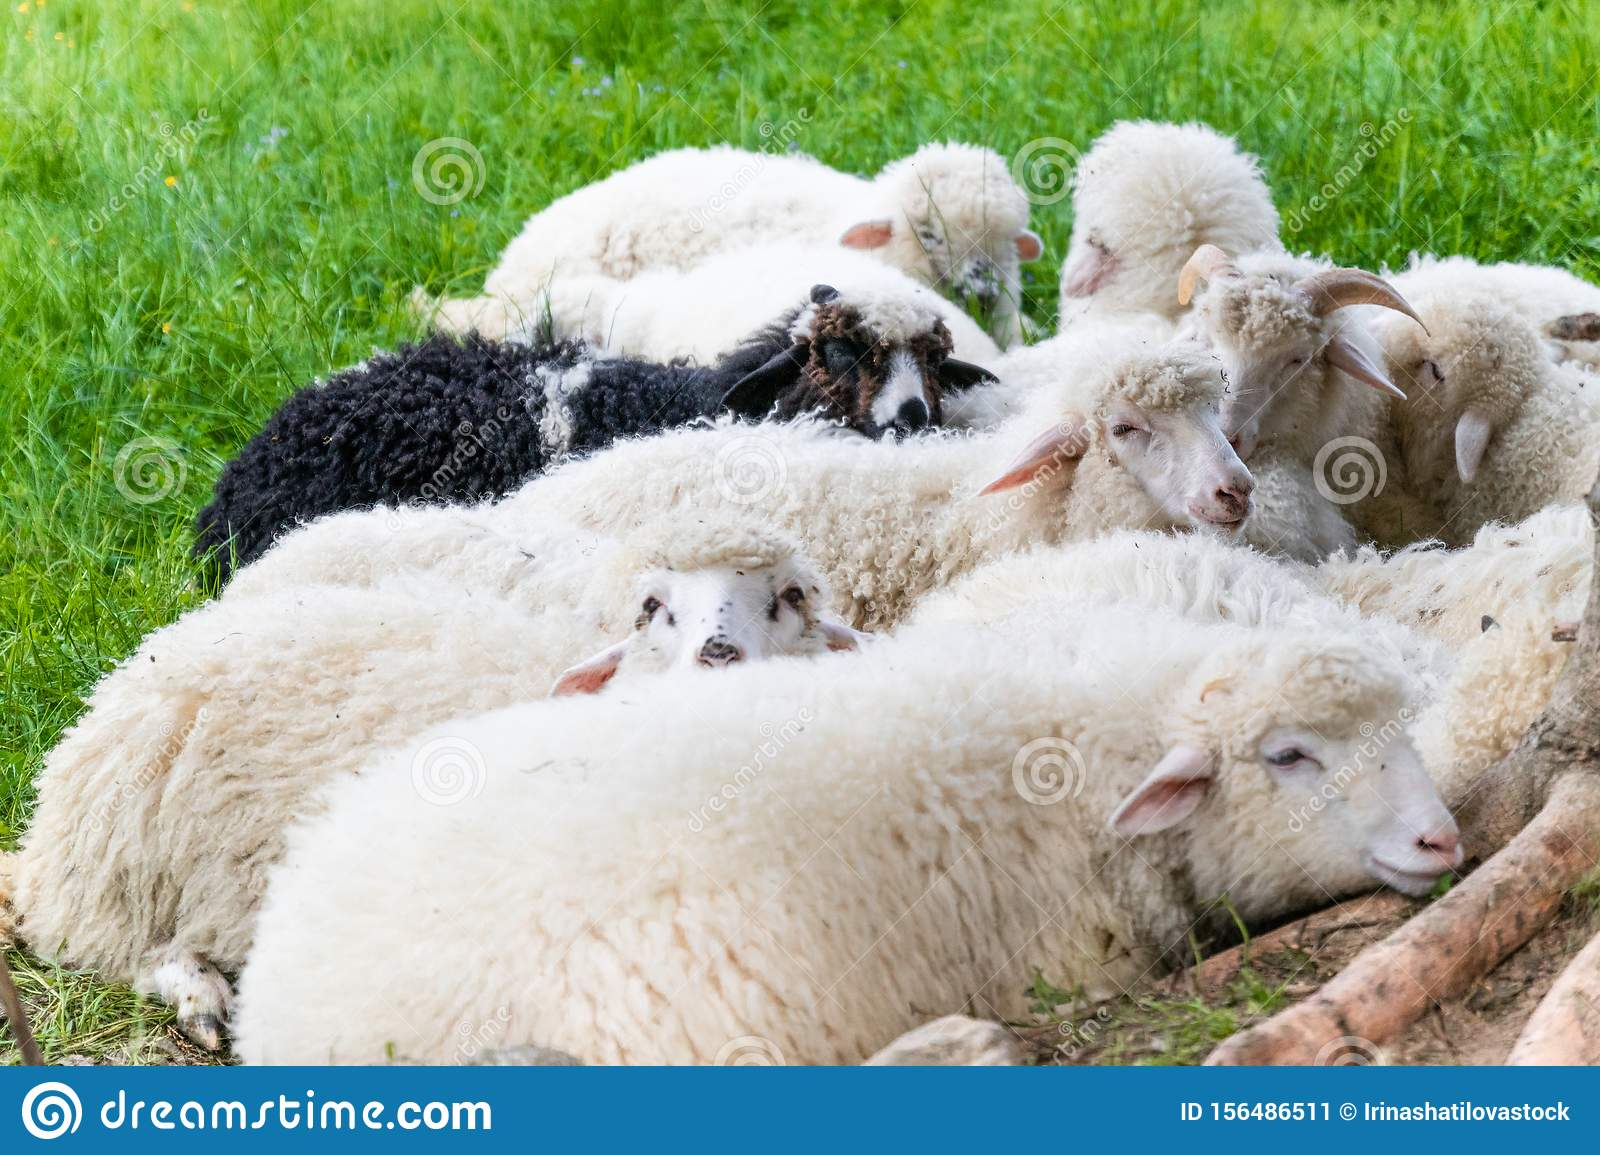 Raised Livestock Flock Of Sheep Lying In A Green Meadow Stock Image Image Of Cluster Curly 156486511